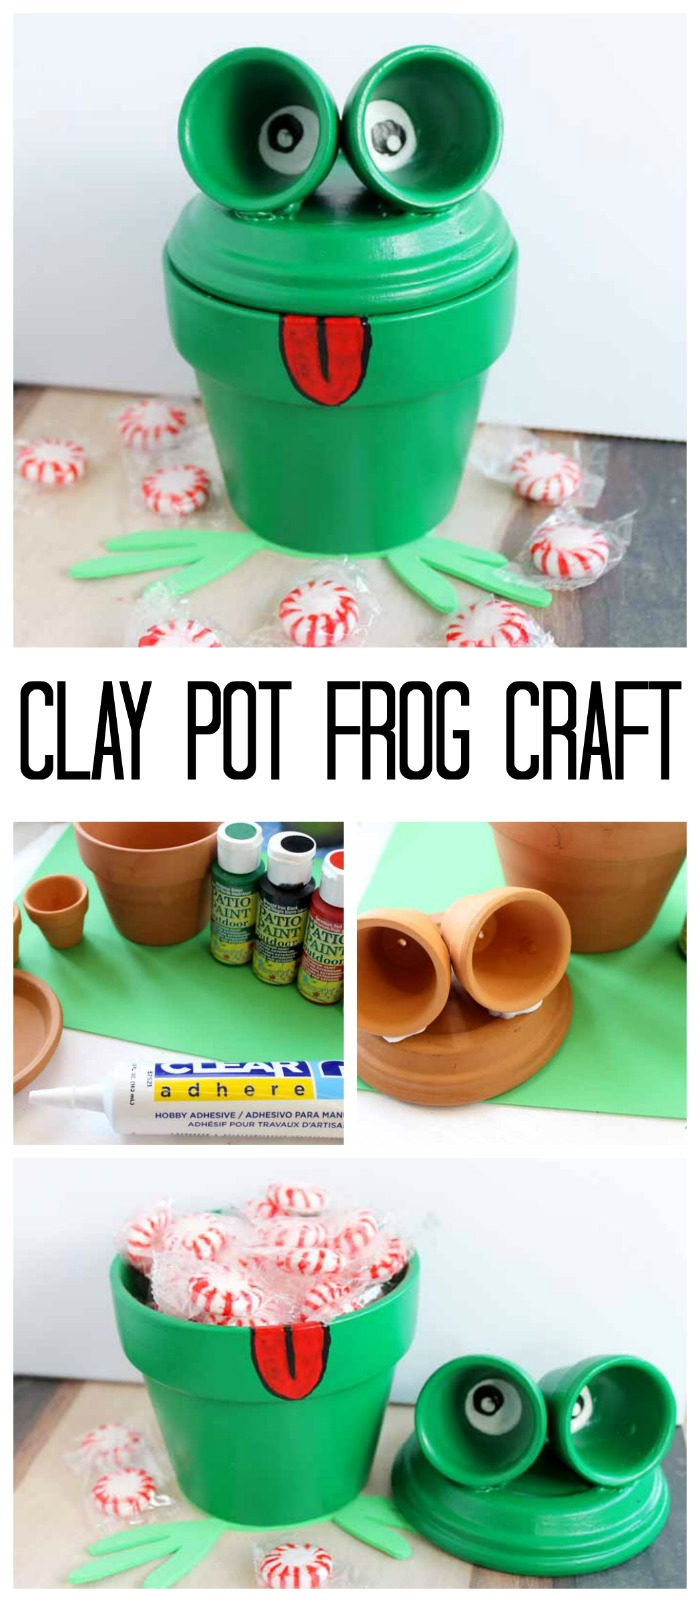 Frog craft painting clay pots the country chic cottage for Pot painting materials required